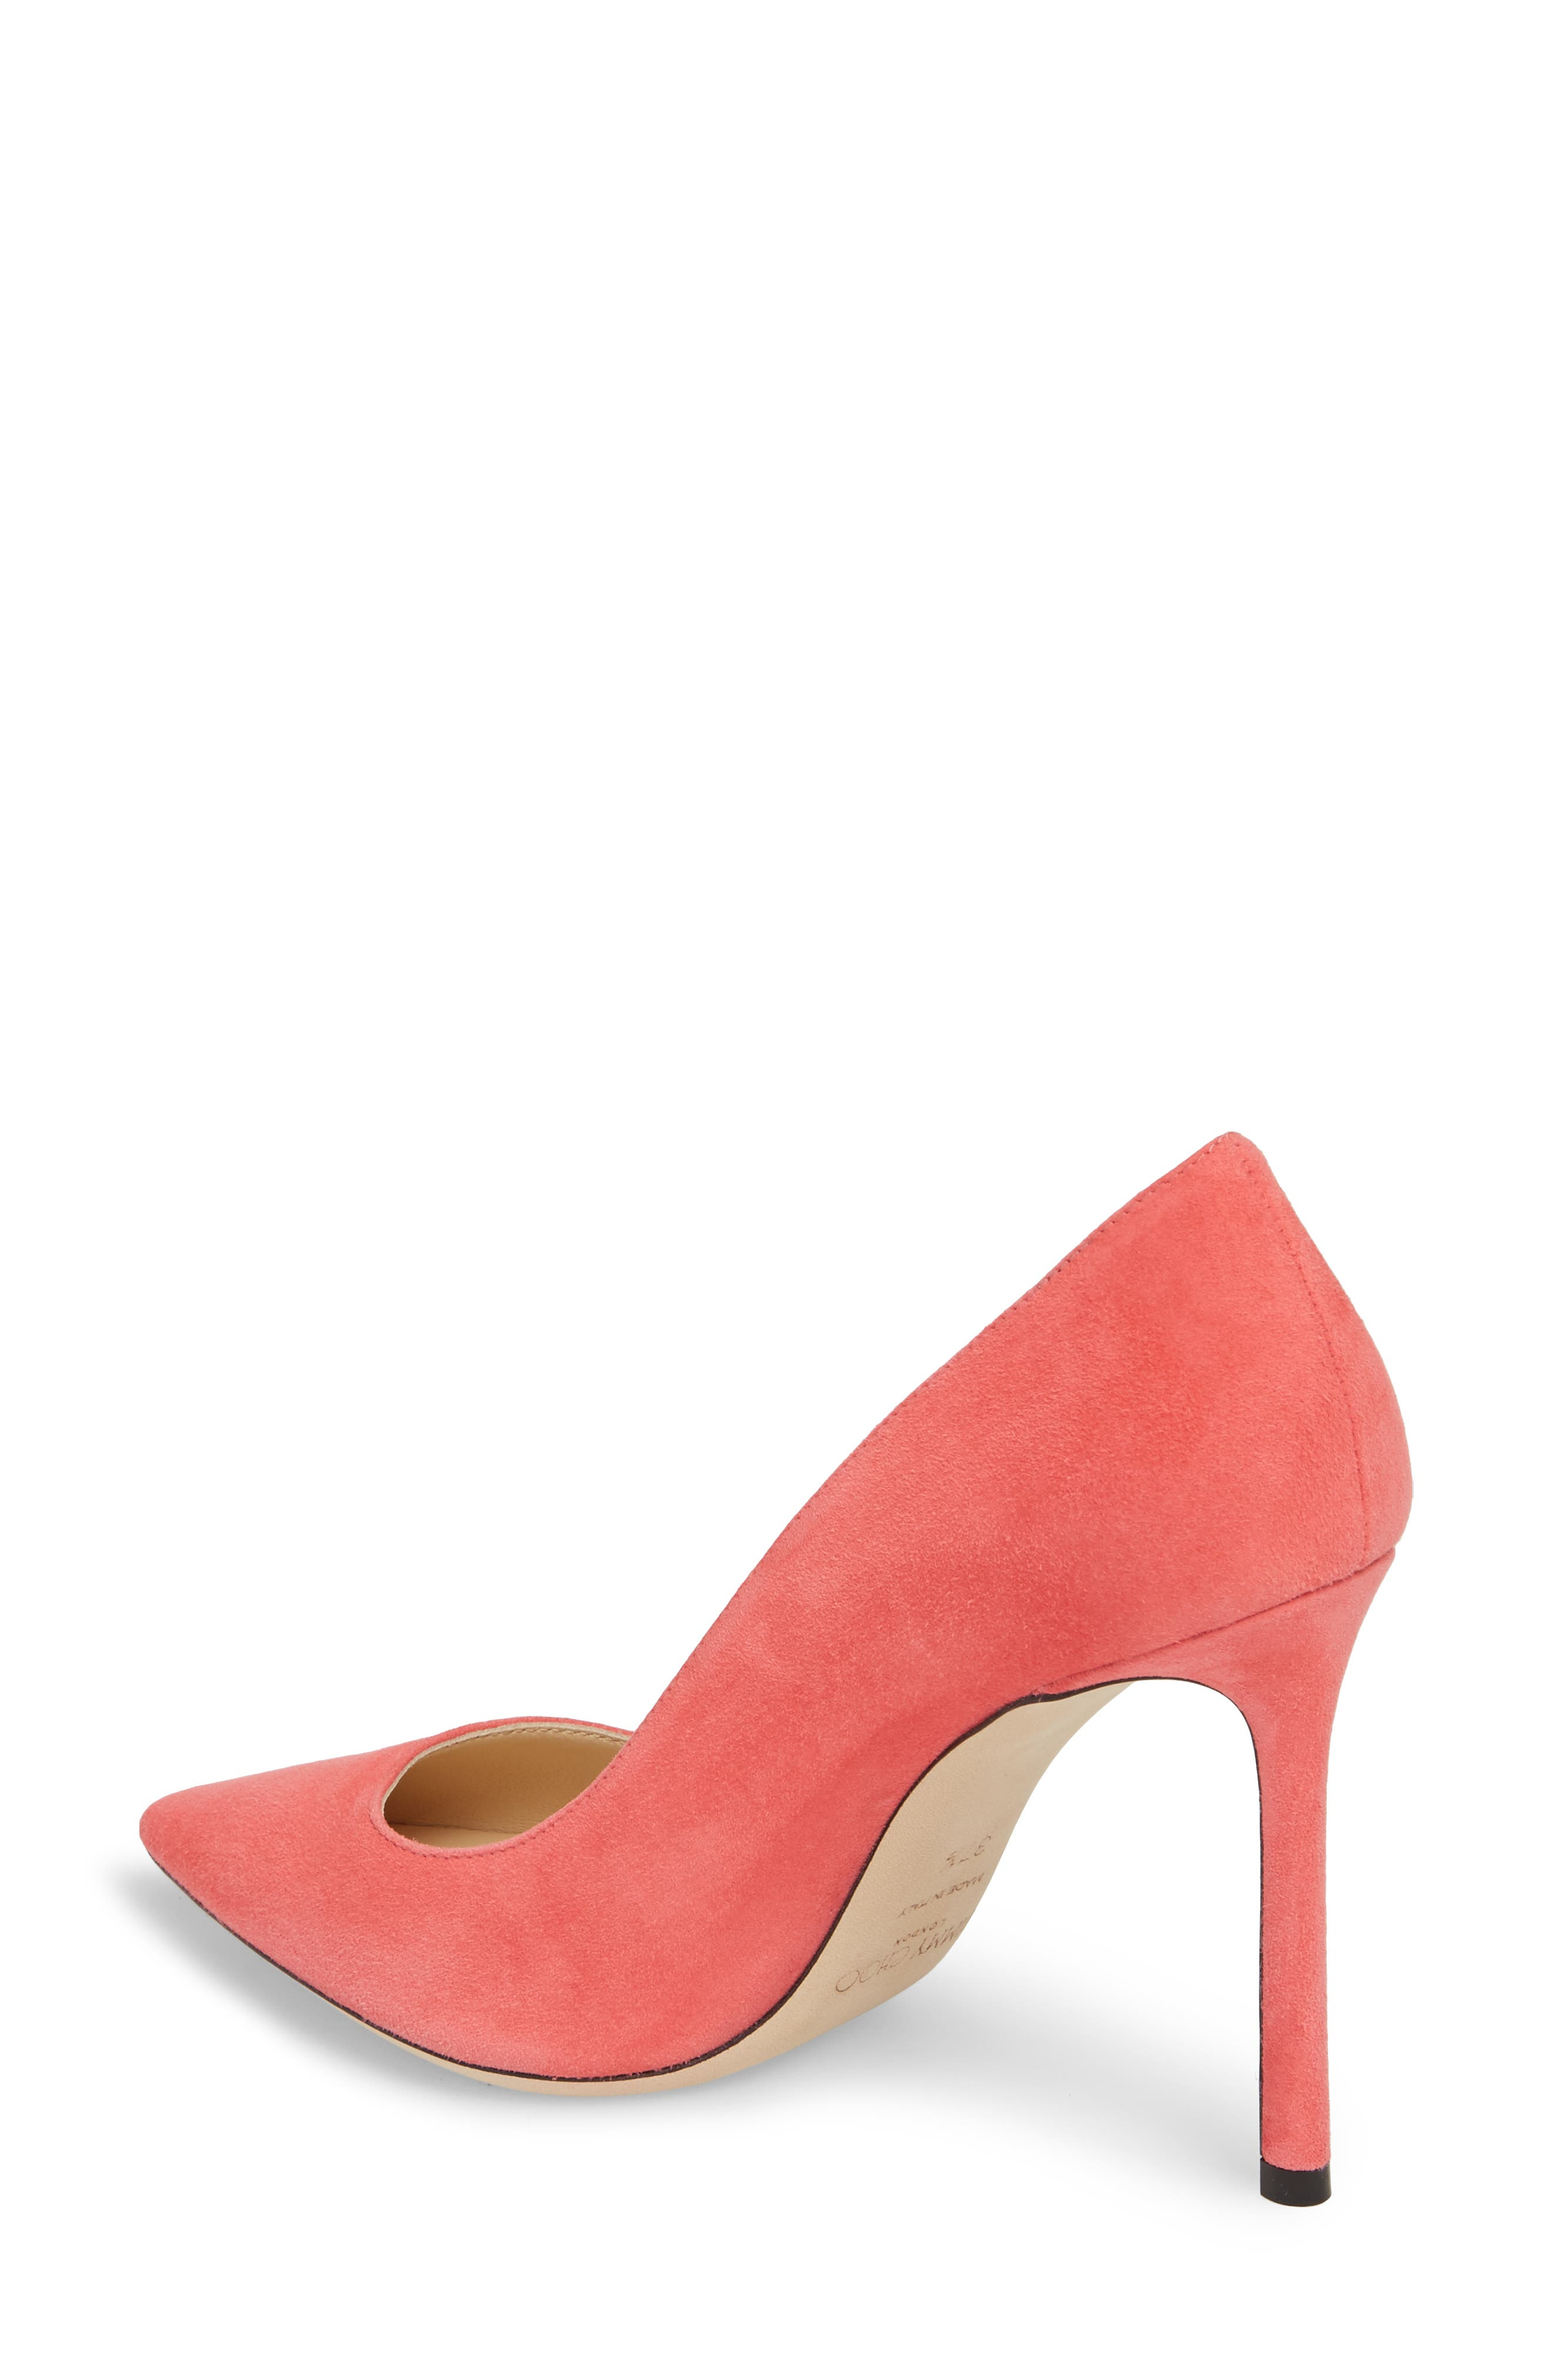 'Romy' Pointy Toe Pump,                             Alternate thumbnail 2, color,                             Flamingo Pink